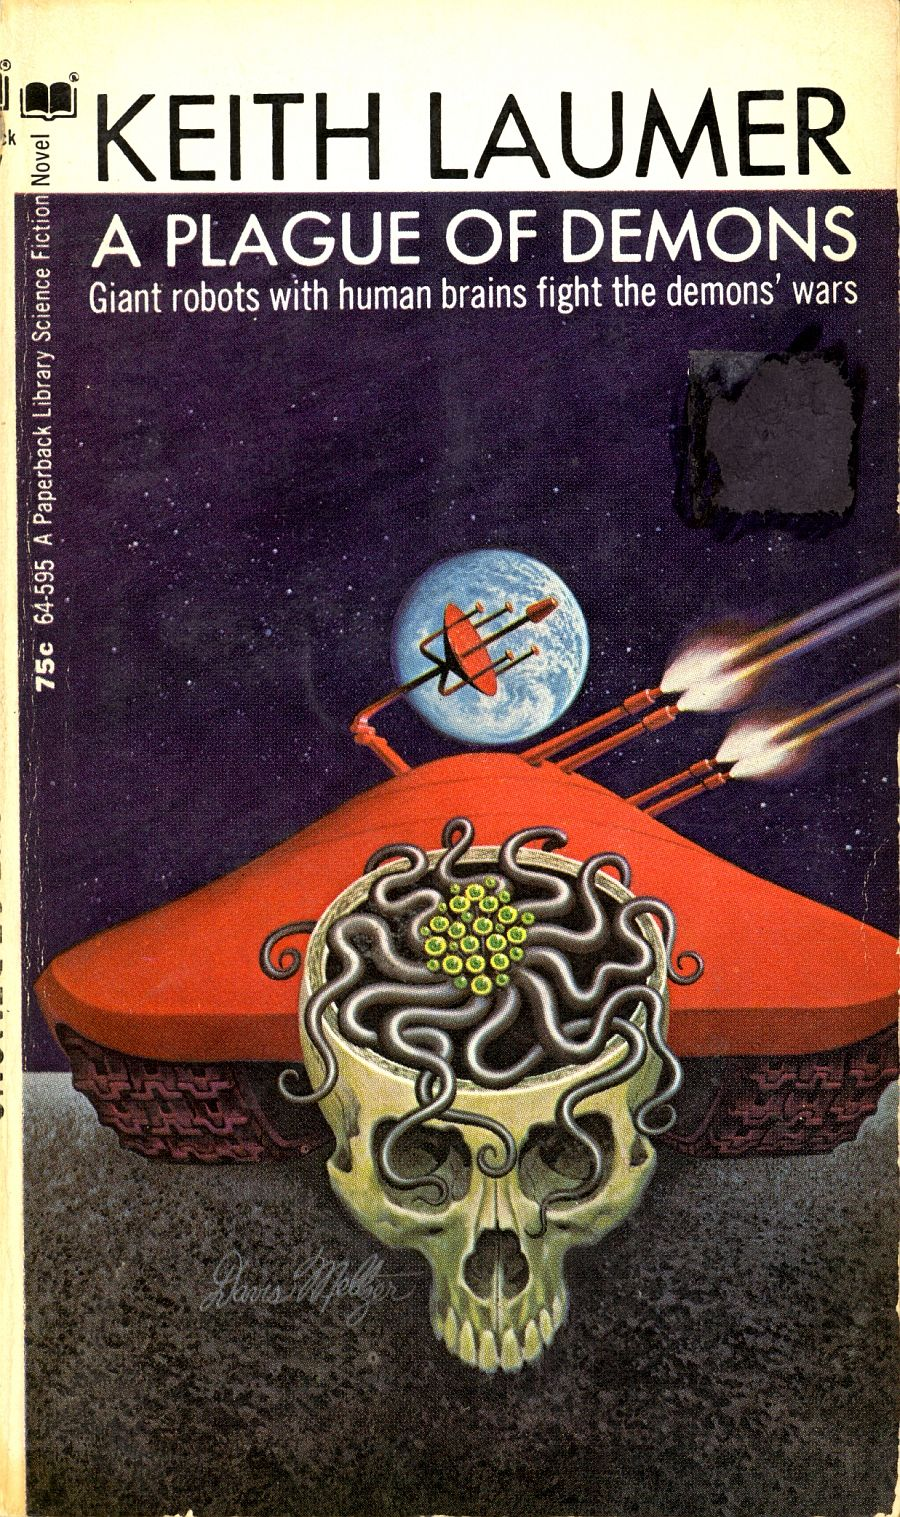 Keith Laumer - A Plague of Demons